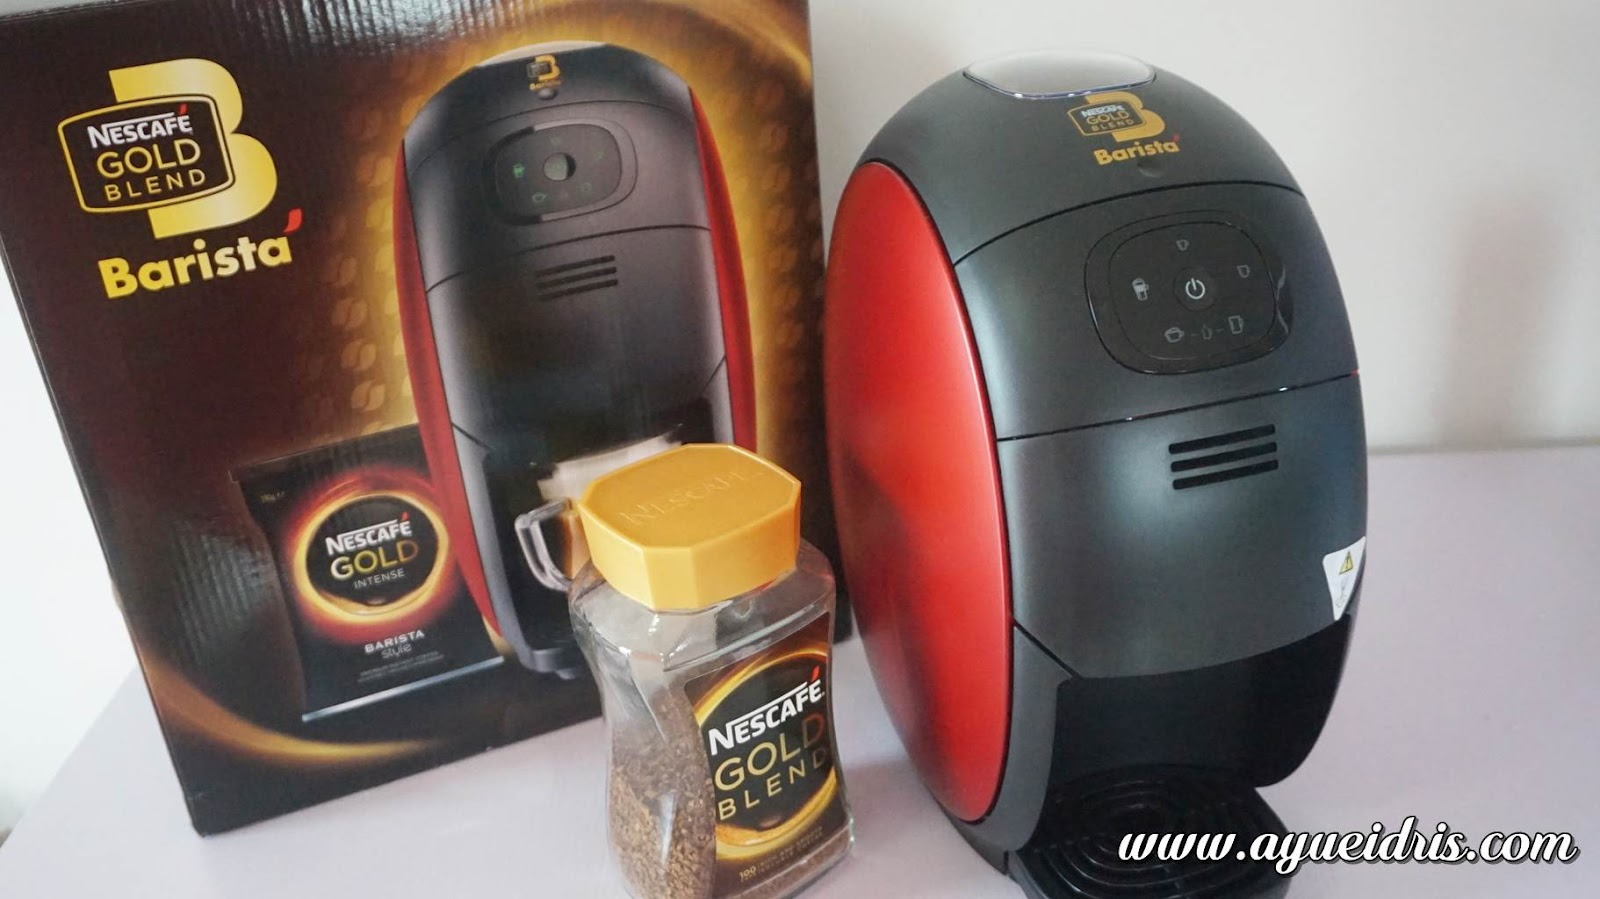 Nescafe Gold Barista Coffee Machine cara guna harga (12).JPG